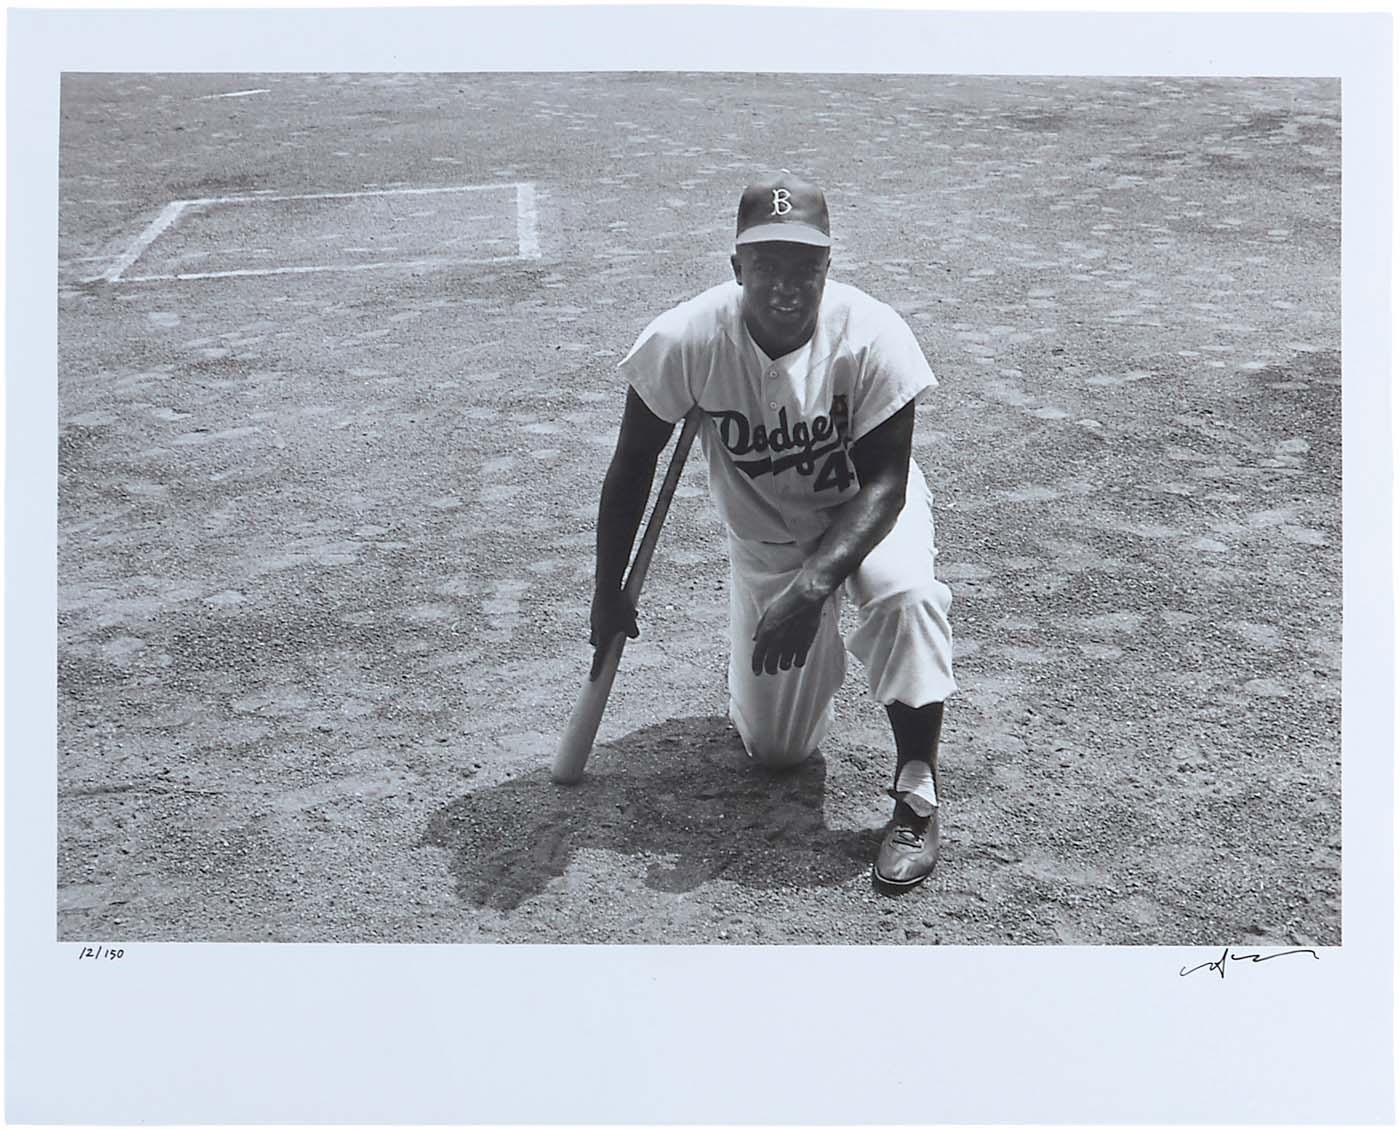 Jackie Robinson Limited Edition Neil Leifer Original Photo (1956)